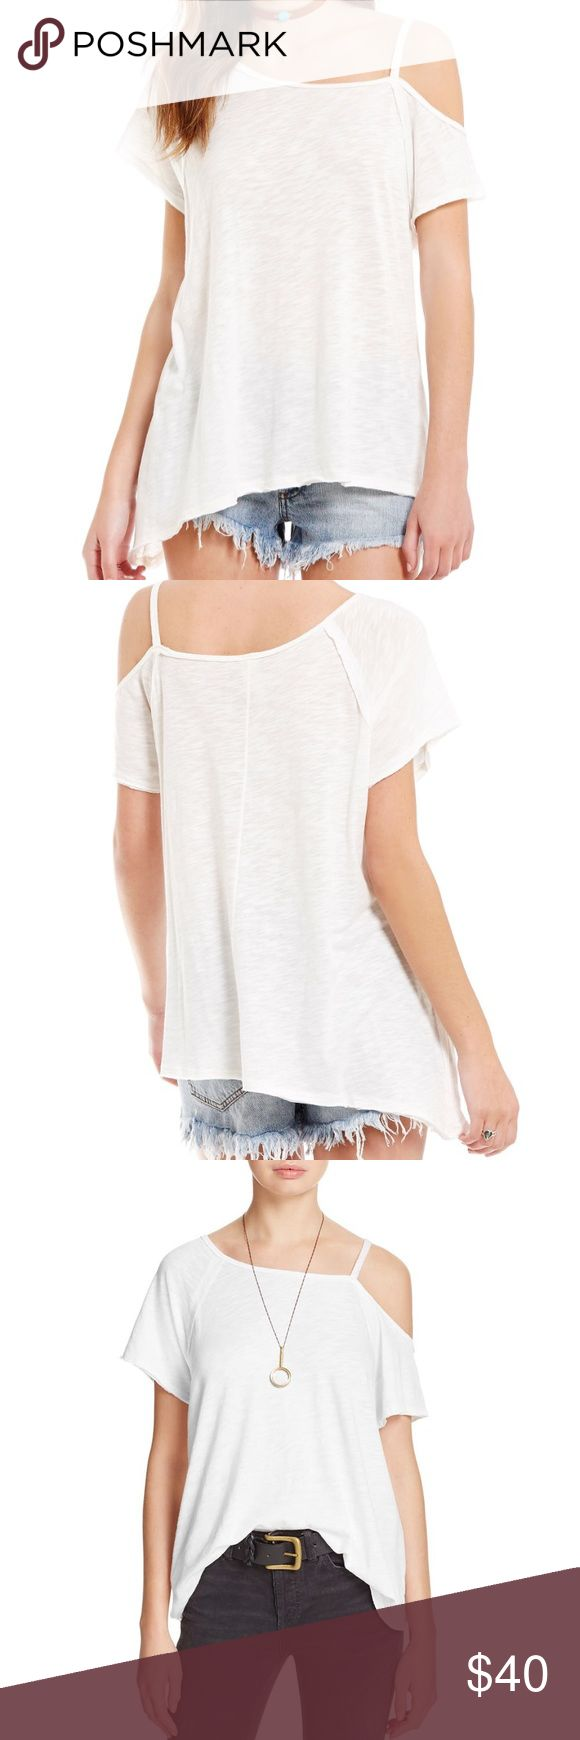 Free People asymmetrical tee, Never been worn!! Free People Coraline Cold Shoulder tee in white, size large. Brand new, never been worn aside from trying it on after ordering online!! I meant to order the medium but they honestly fit very similar. Super soft fabric and very comfortable! Free People Tops